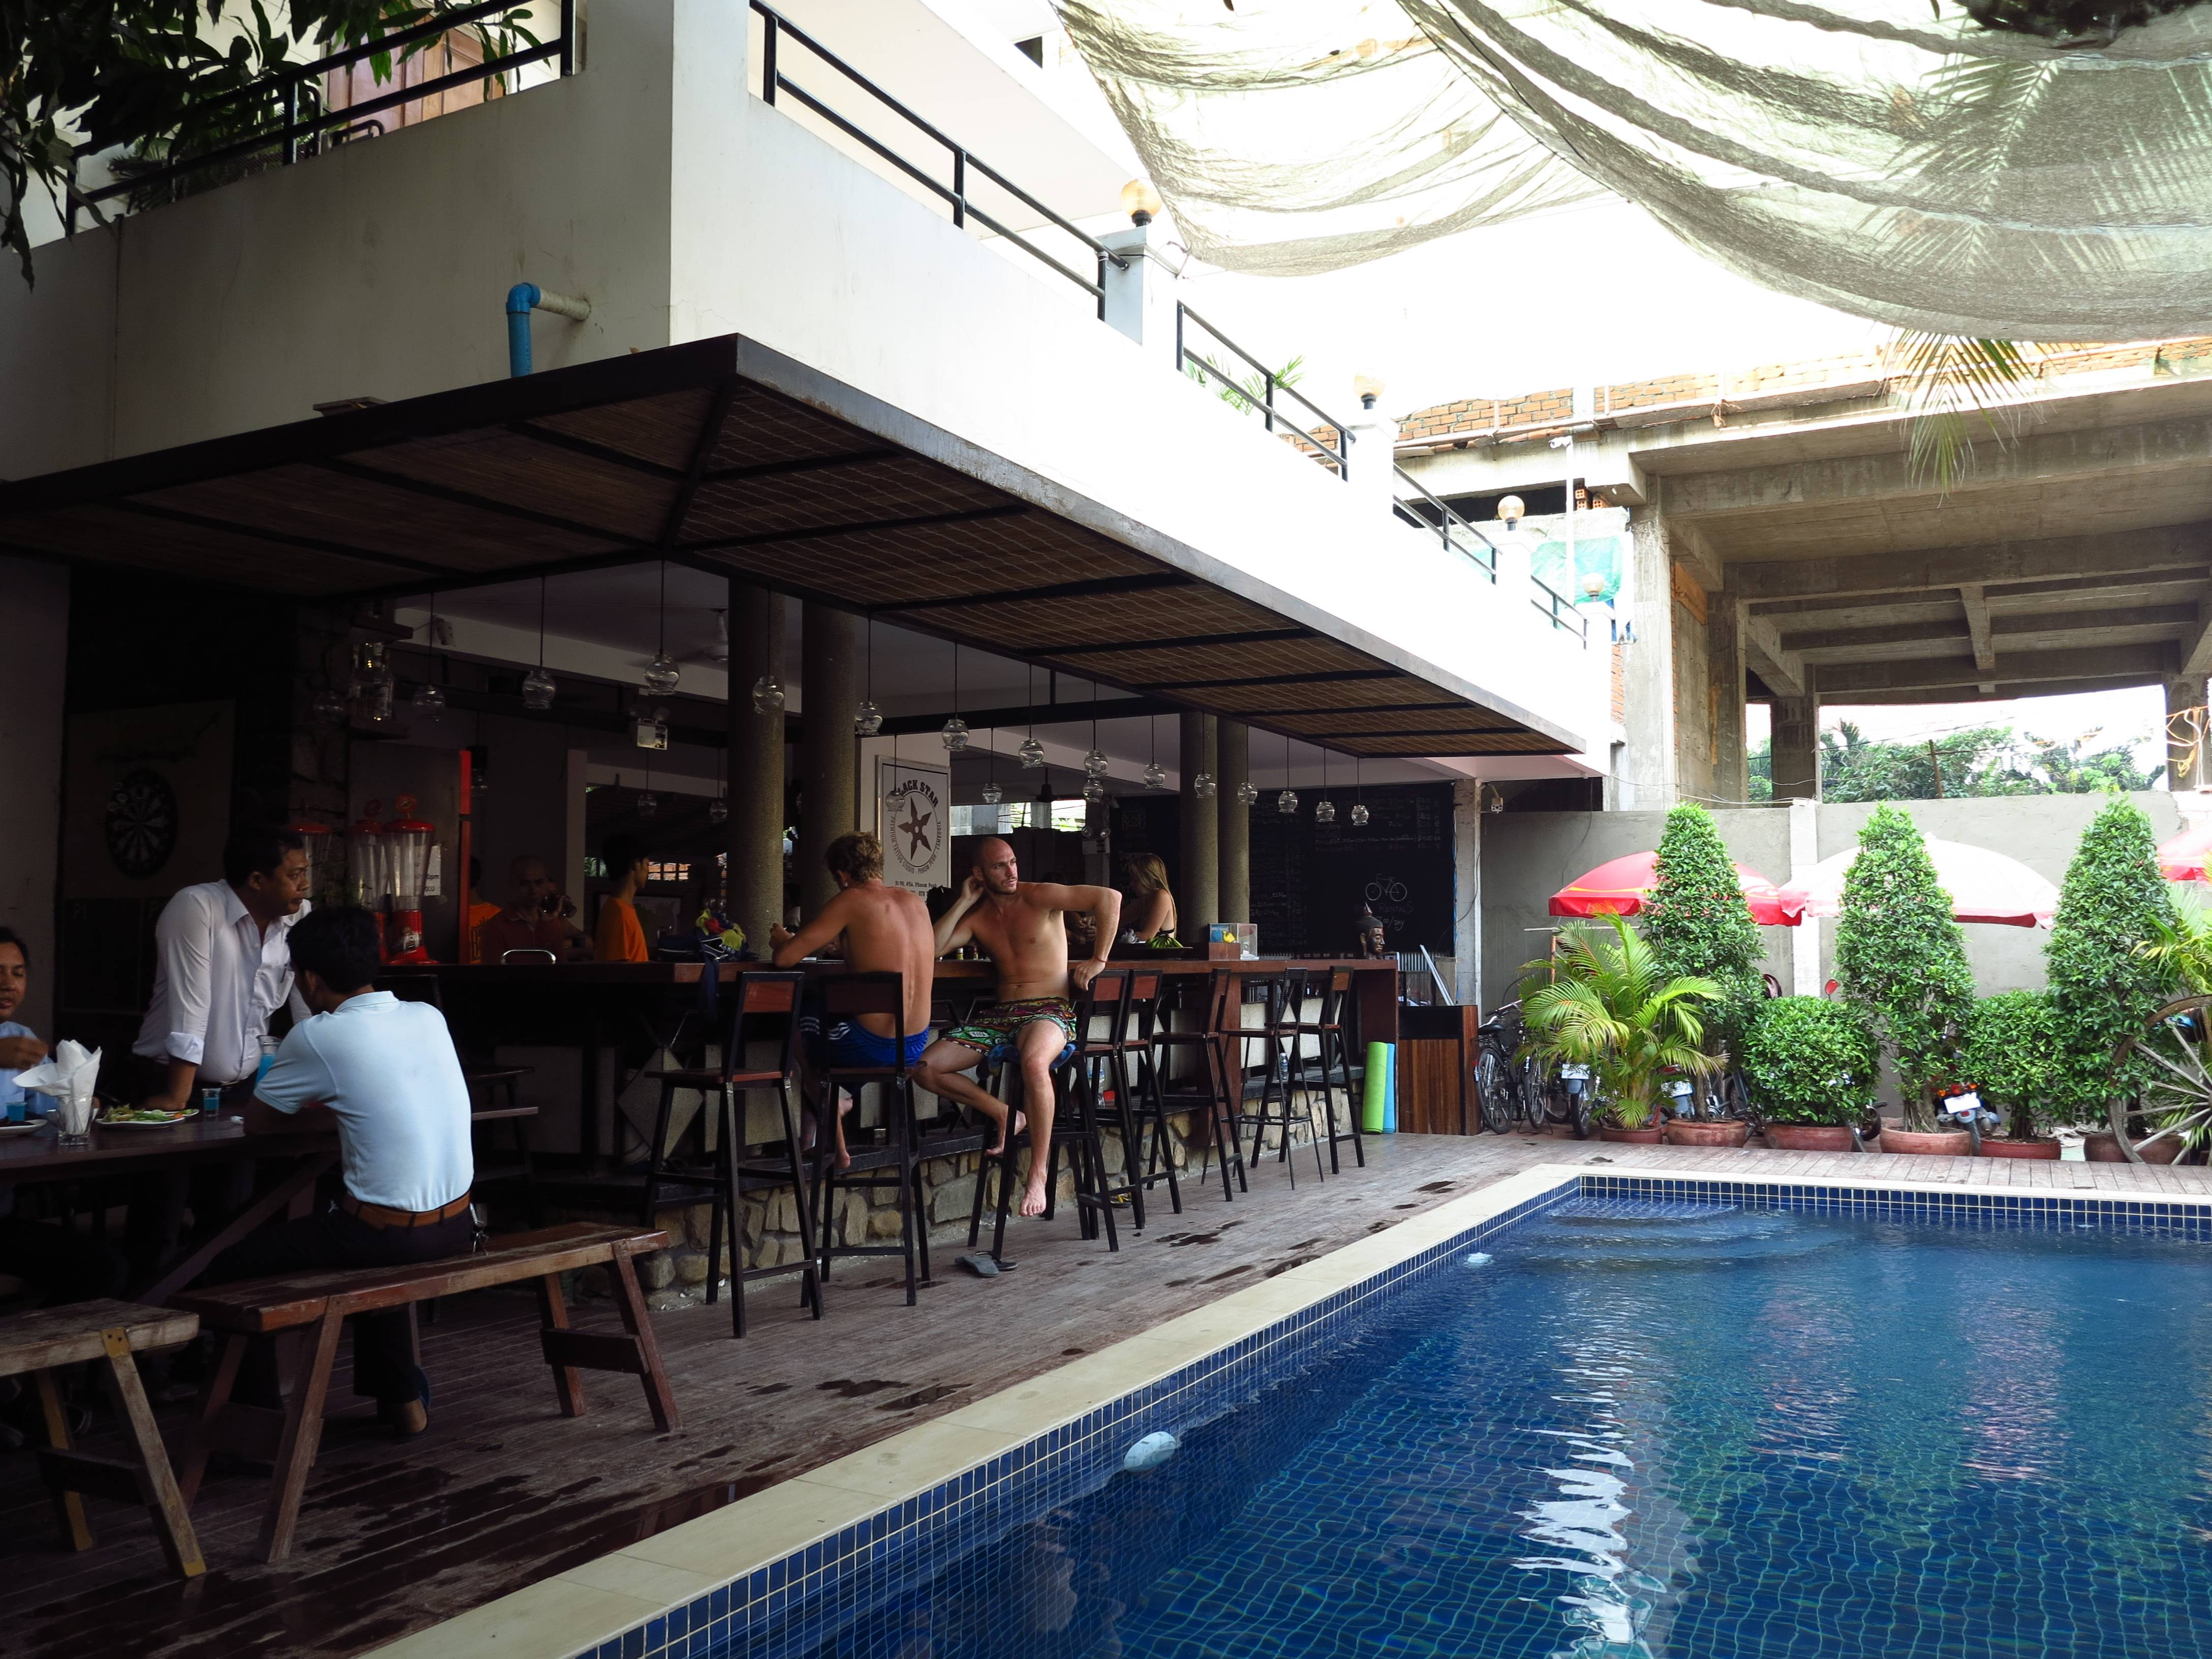 Photo 3: Auberge Base Villa, Phnom Penh, Cambodge